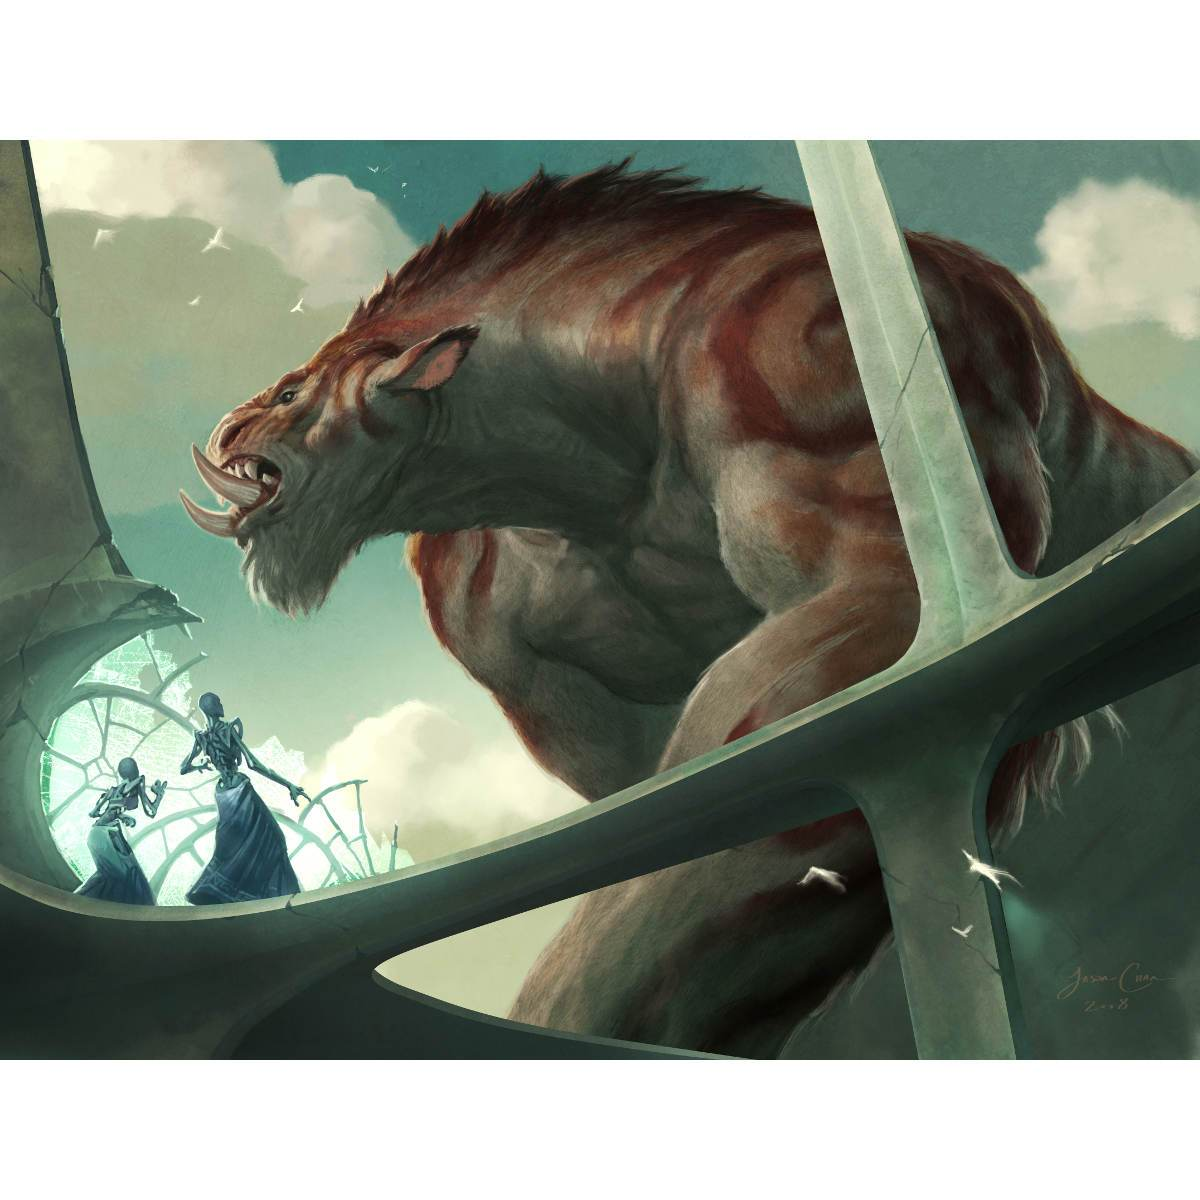 Spellbreaker Behemoth Print - Print - Original Magic Art - Accessories for Magic the Gathering and other card games